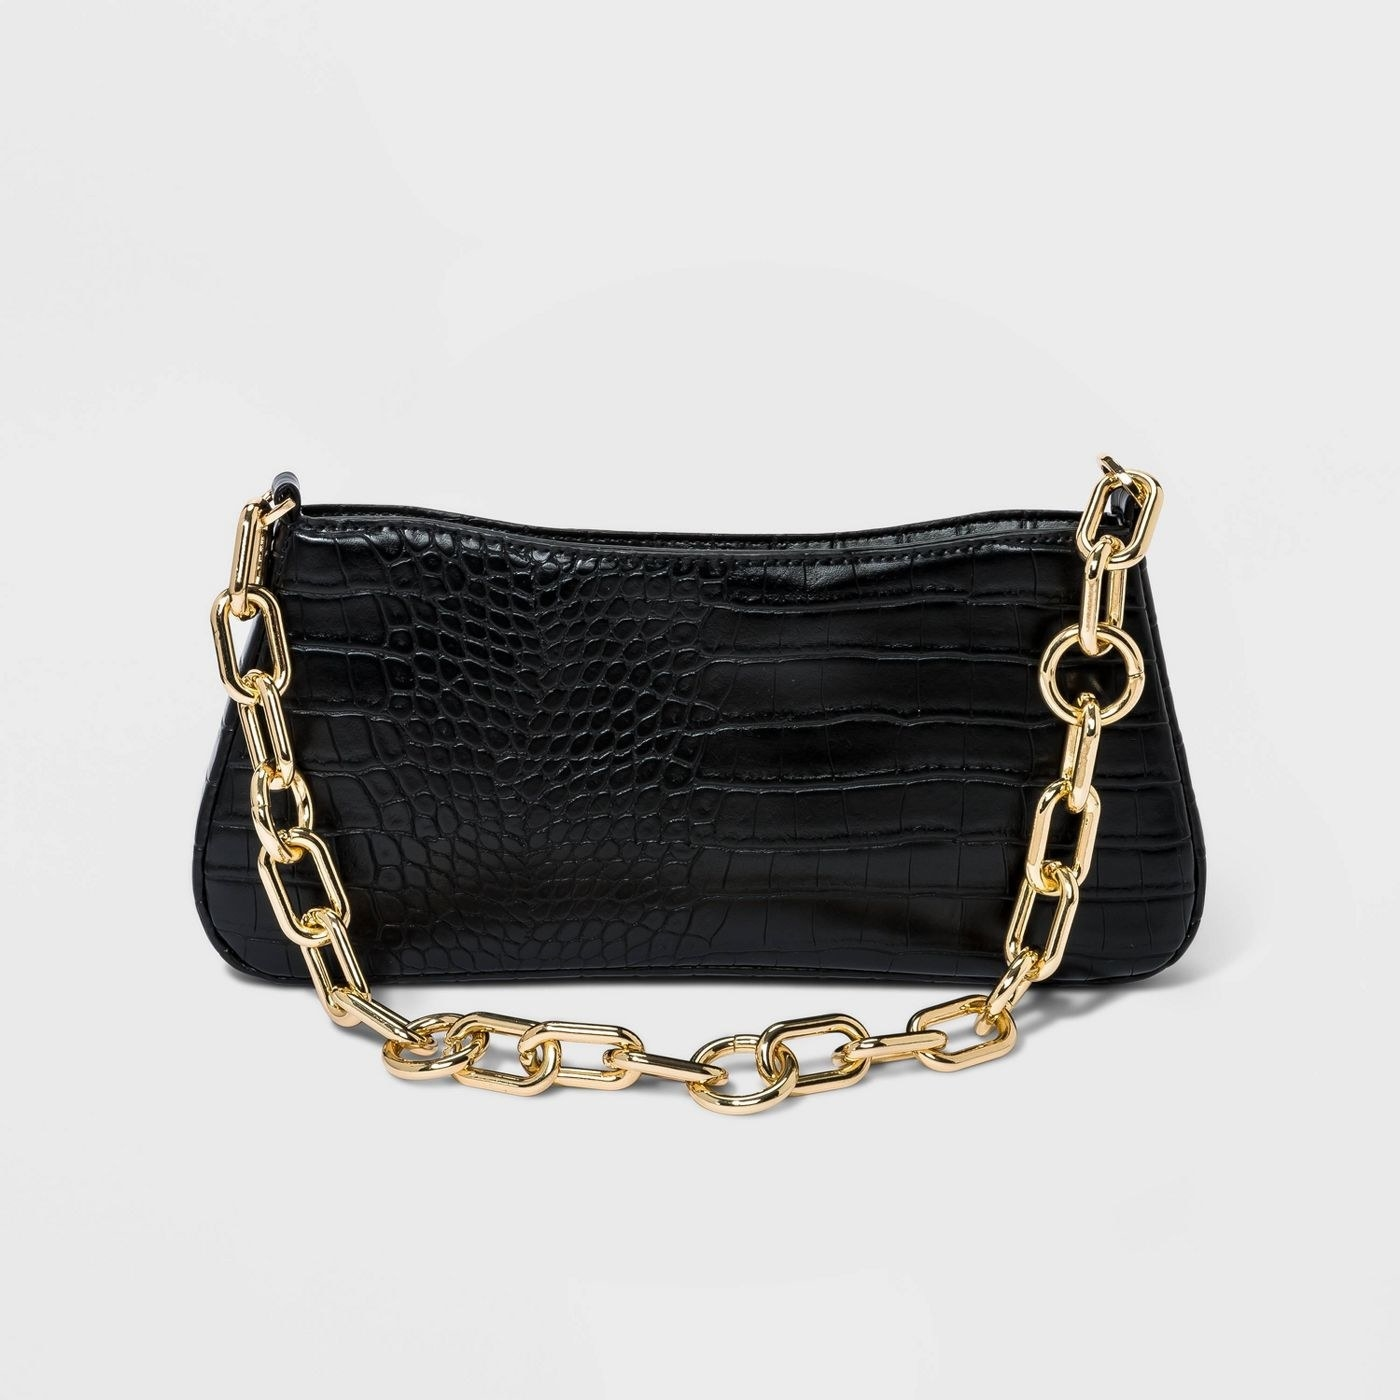 a faux alligator print purse with a chain for a handle